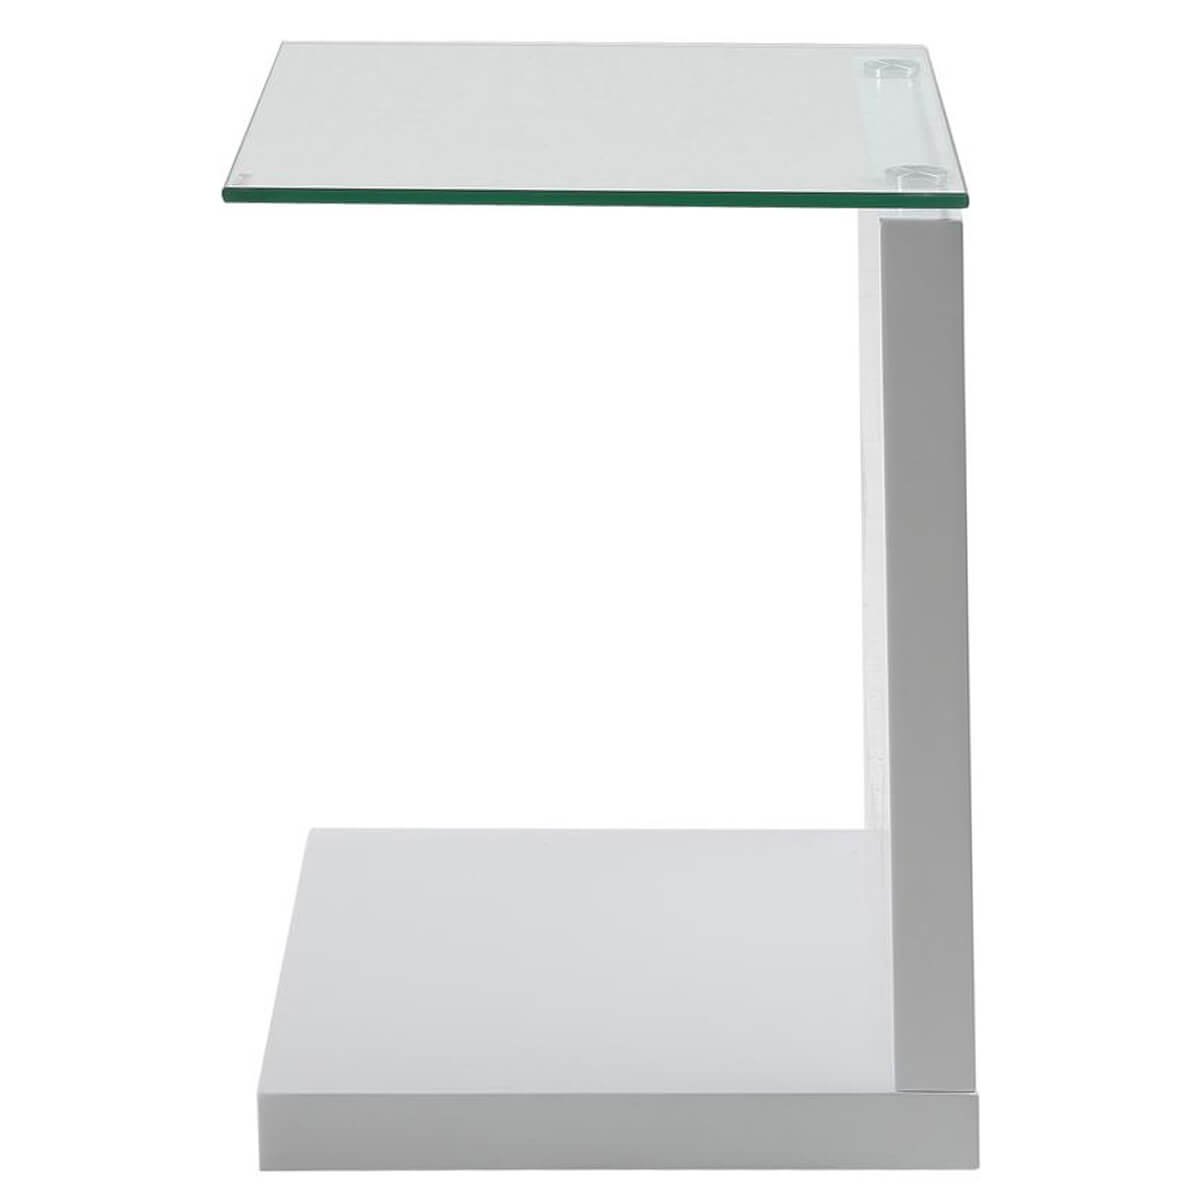 White Gloss Bathroom Fitted Furniture 1500mm: Tupit White Gloss Lamp Table